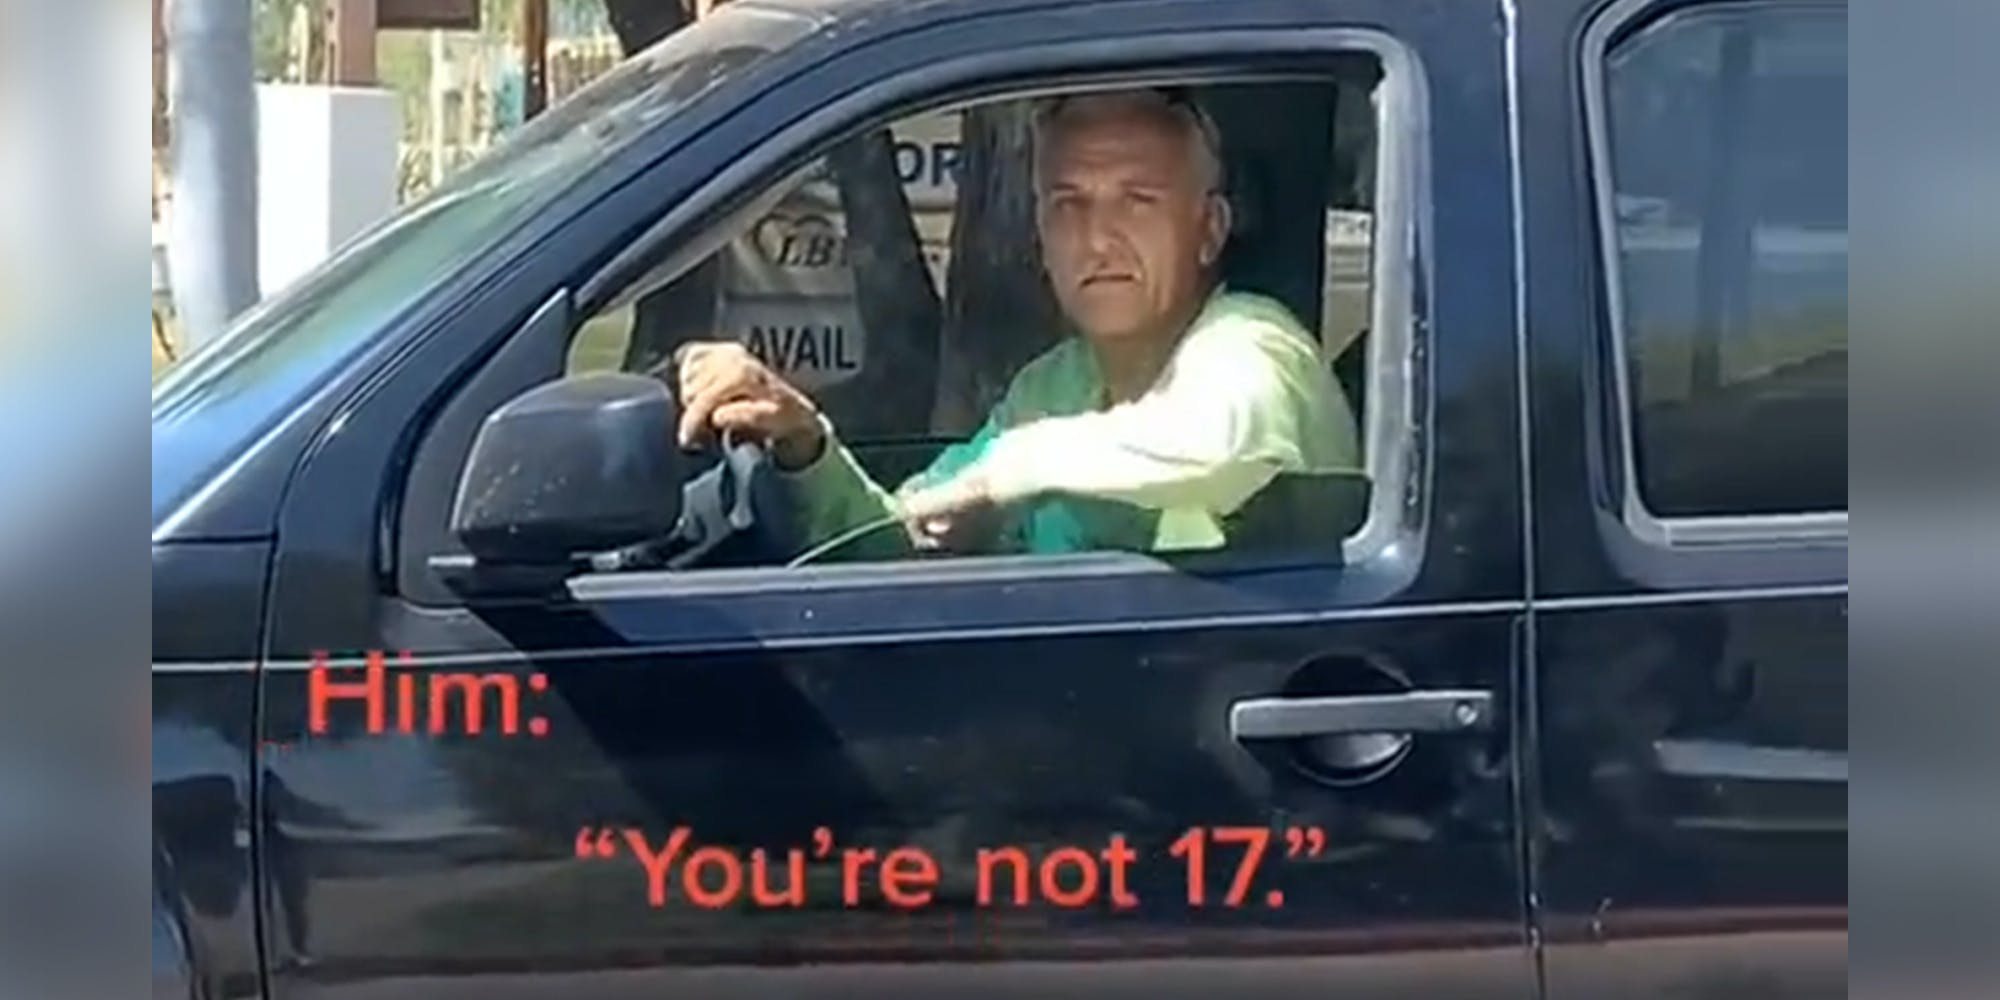 """man in driver's seat looking out of window with caption """"Him: You're not 17."""""""